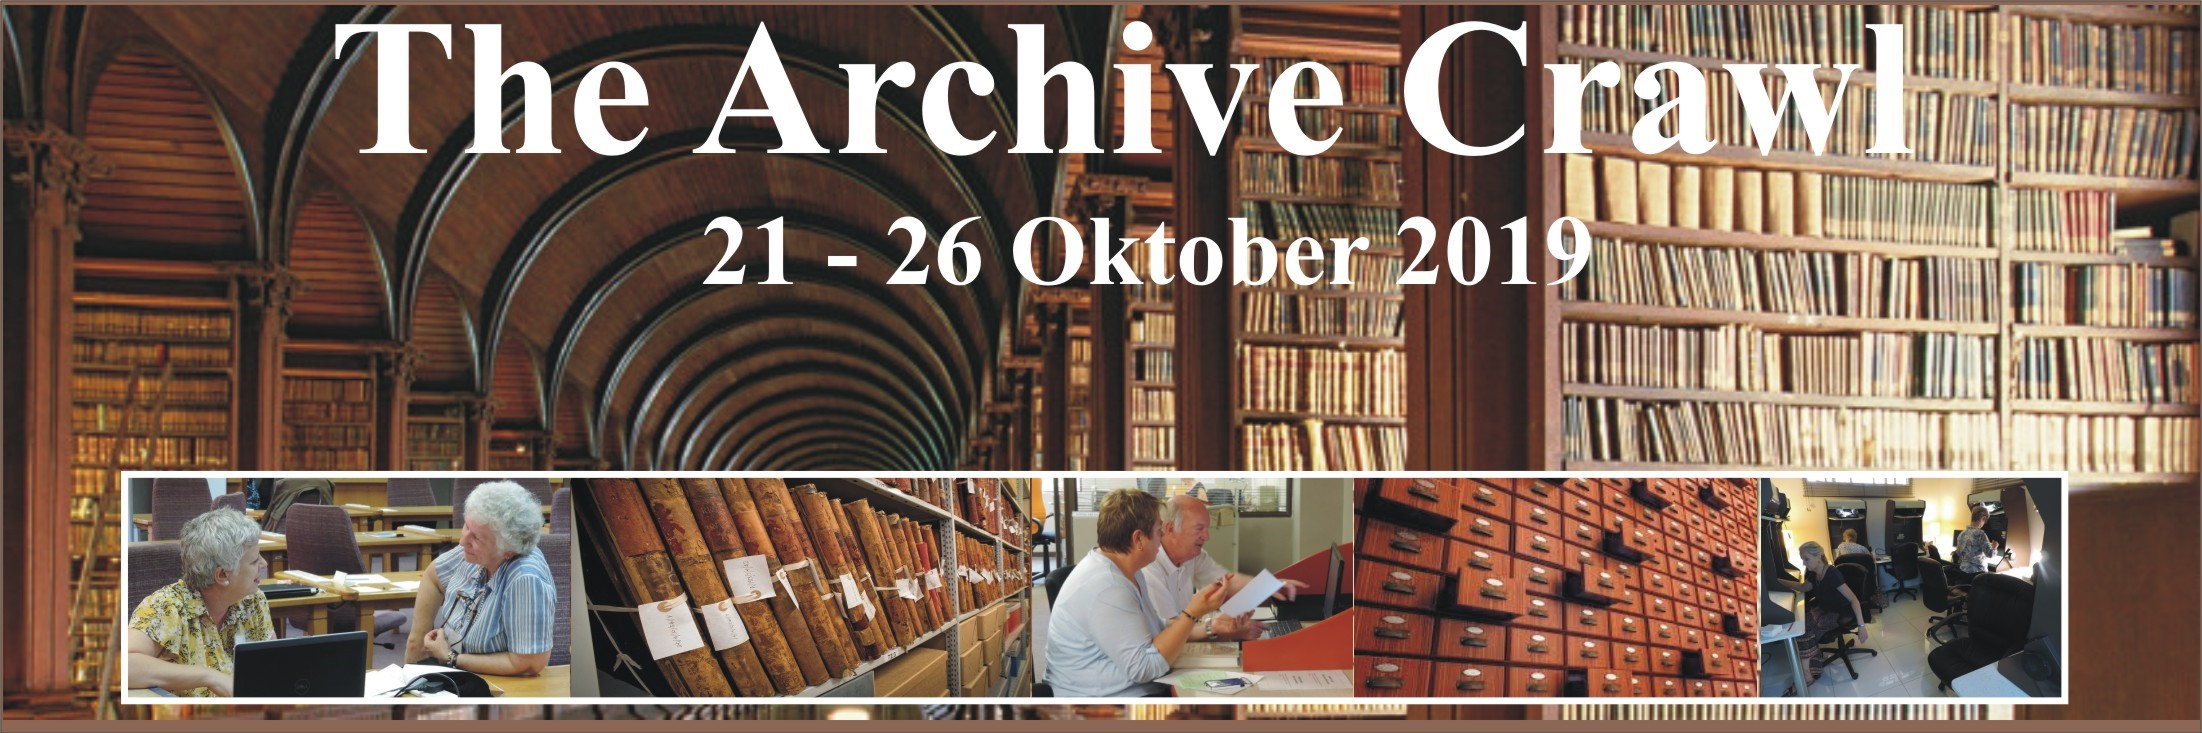 Archive Crawl AFR cropped